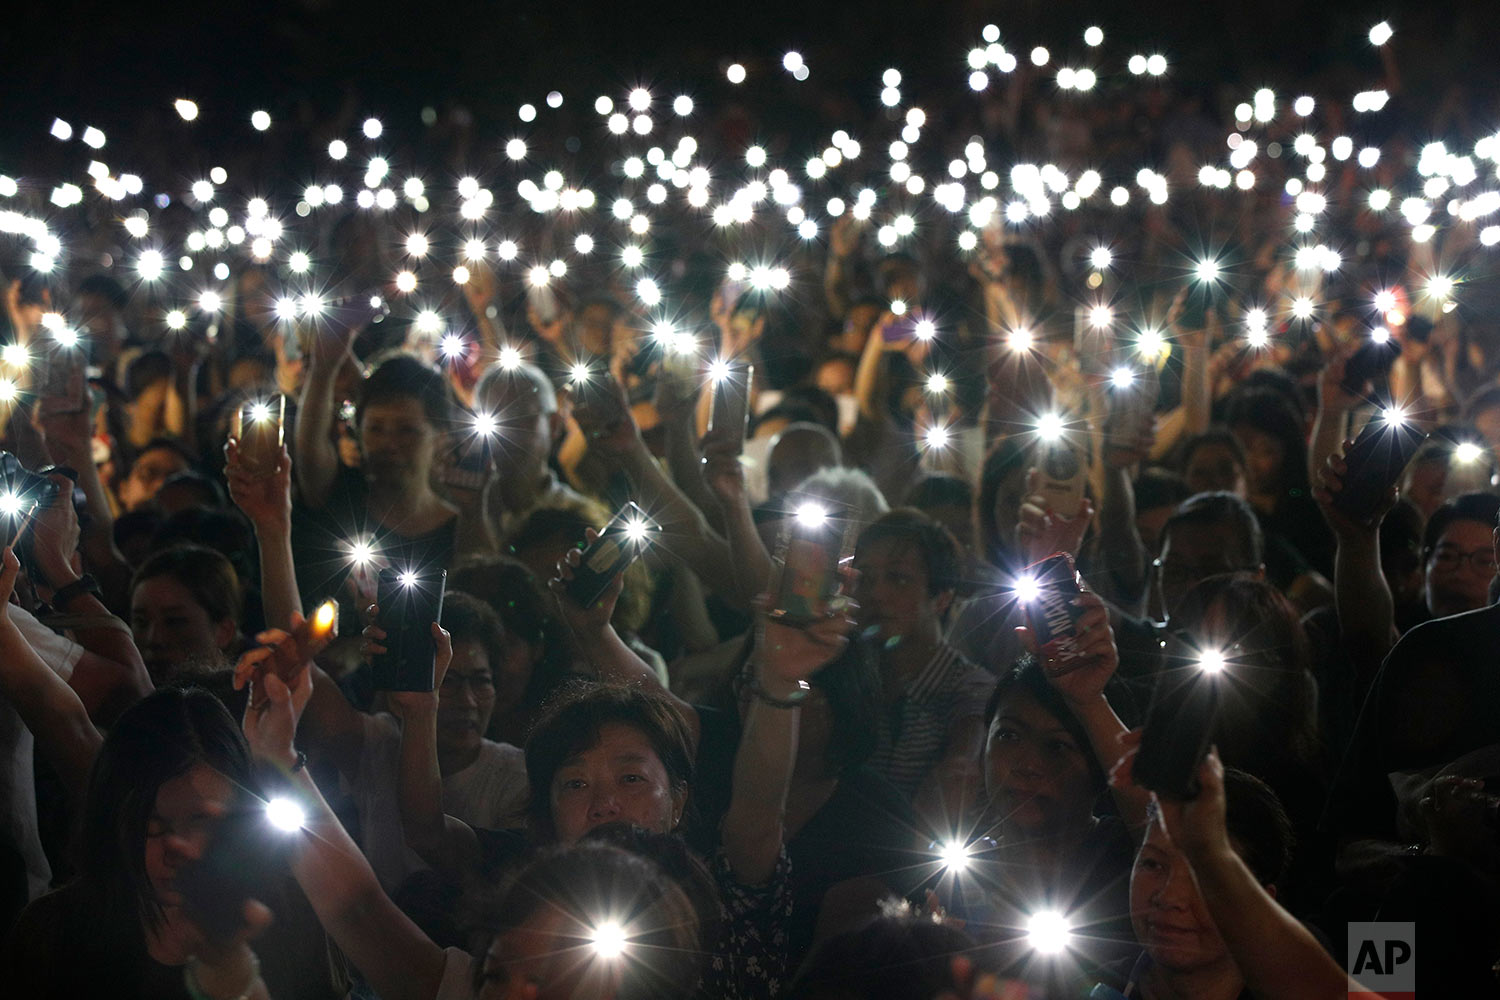 Attendees hold up their lit mobile phones during a rally by mothers in support of student protesters in Hong Kong, July 5, 2019. (AP Photo/Andy Wong)